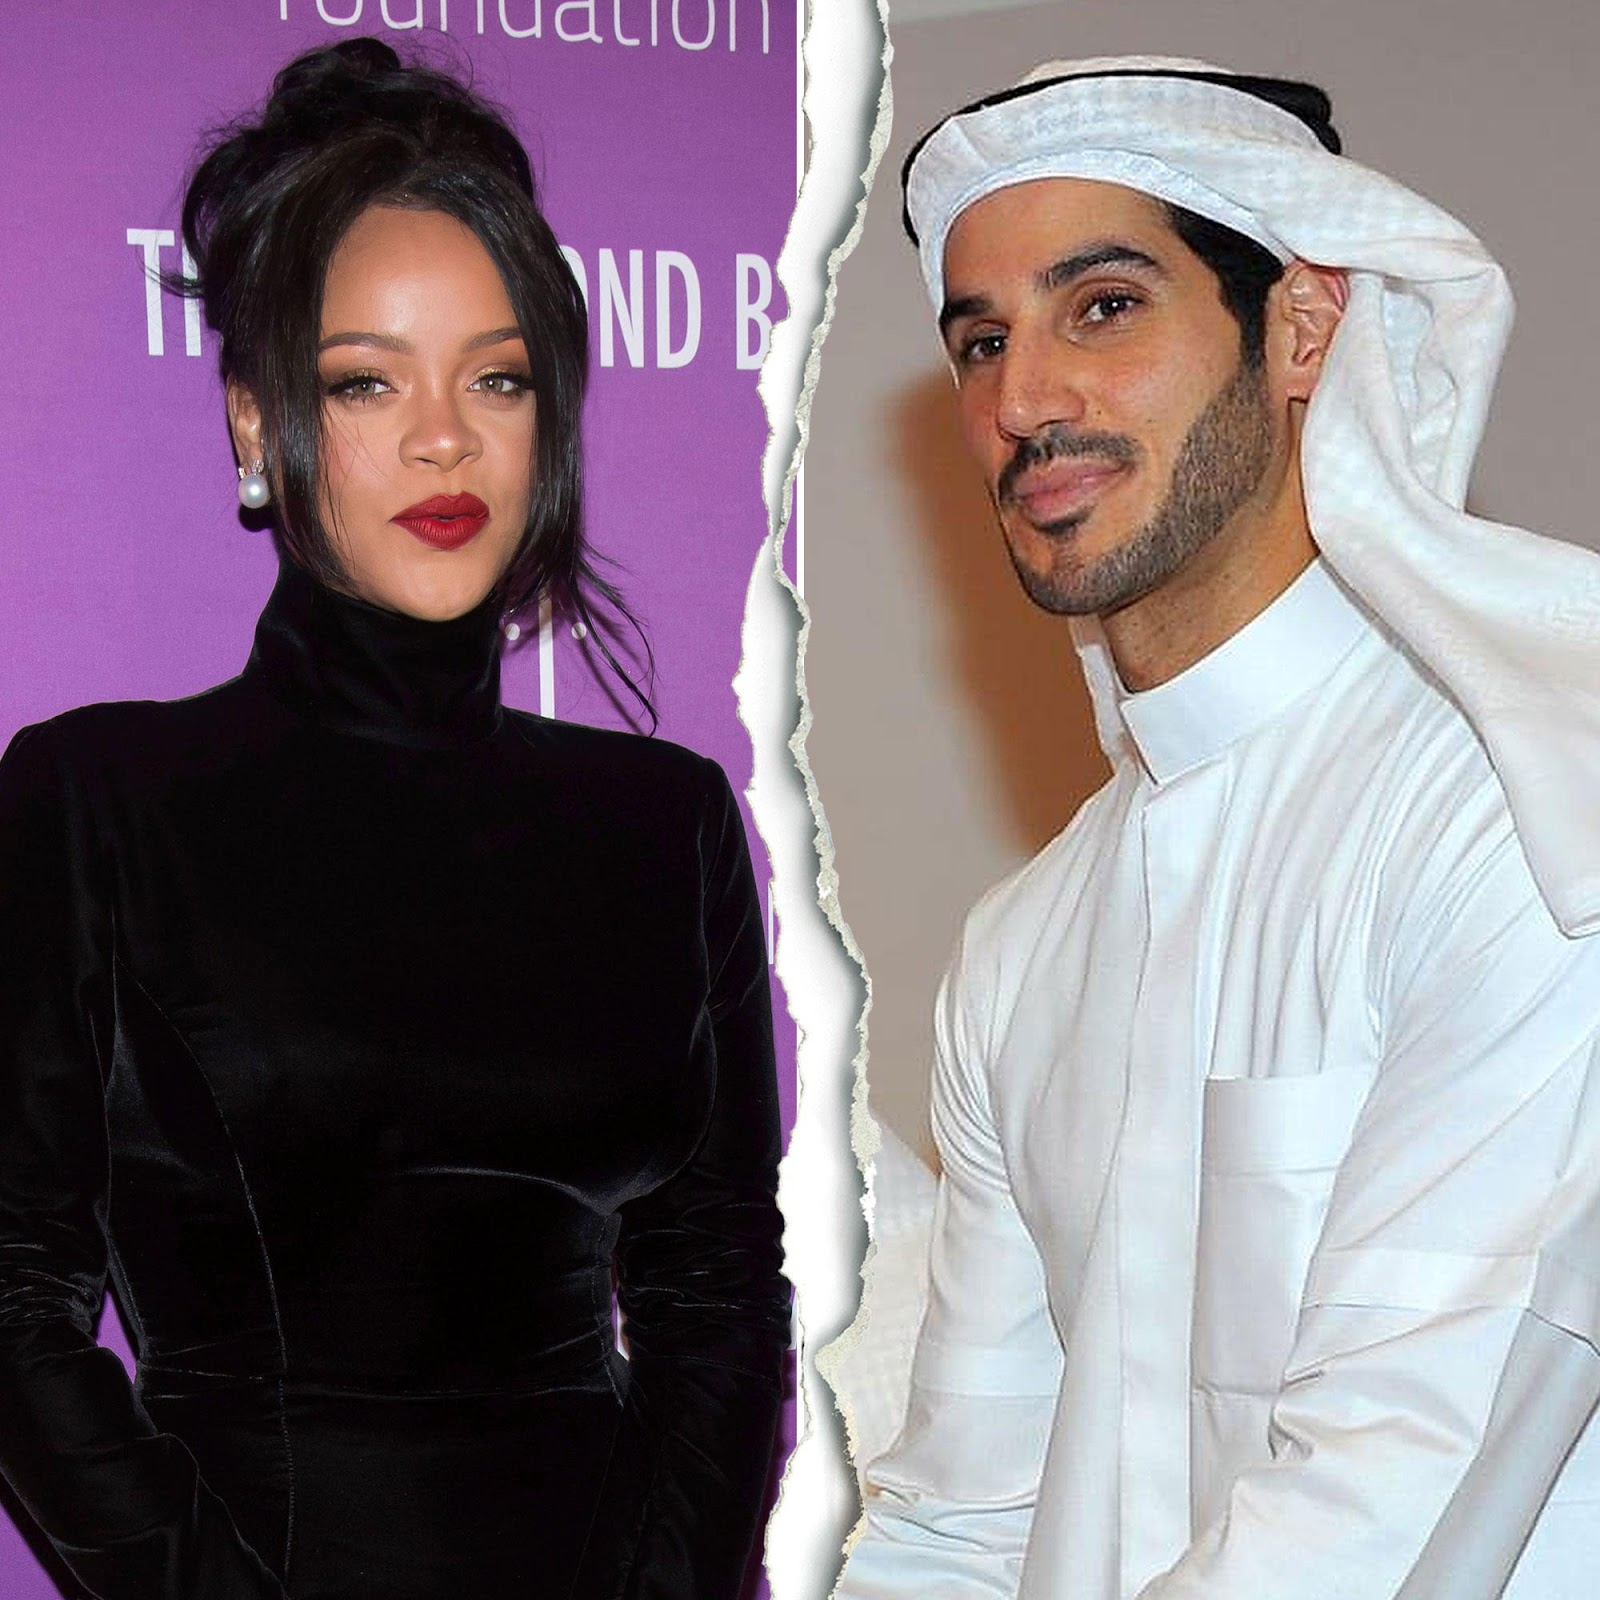 Description: https://upnewsinfo.com/wp-content/uploads/2020/01/According-to-reports-Rihanna-and-Hassan-Jameel-broke-down-due.jpg